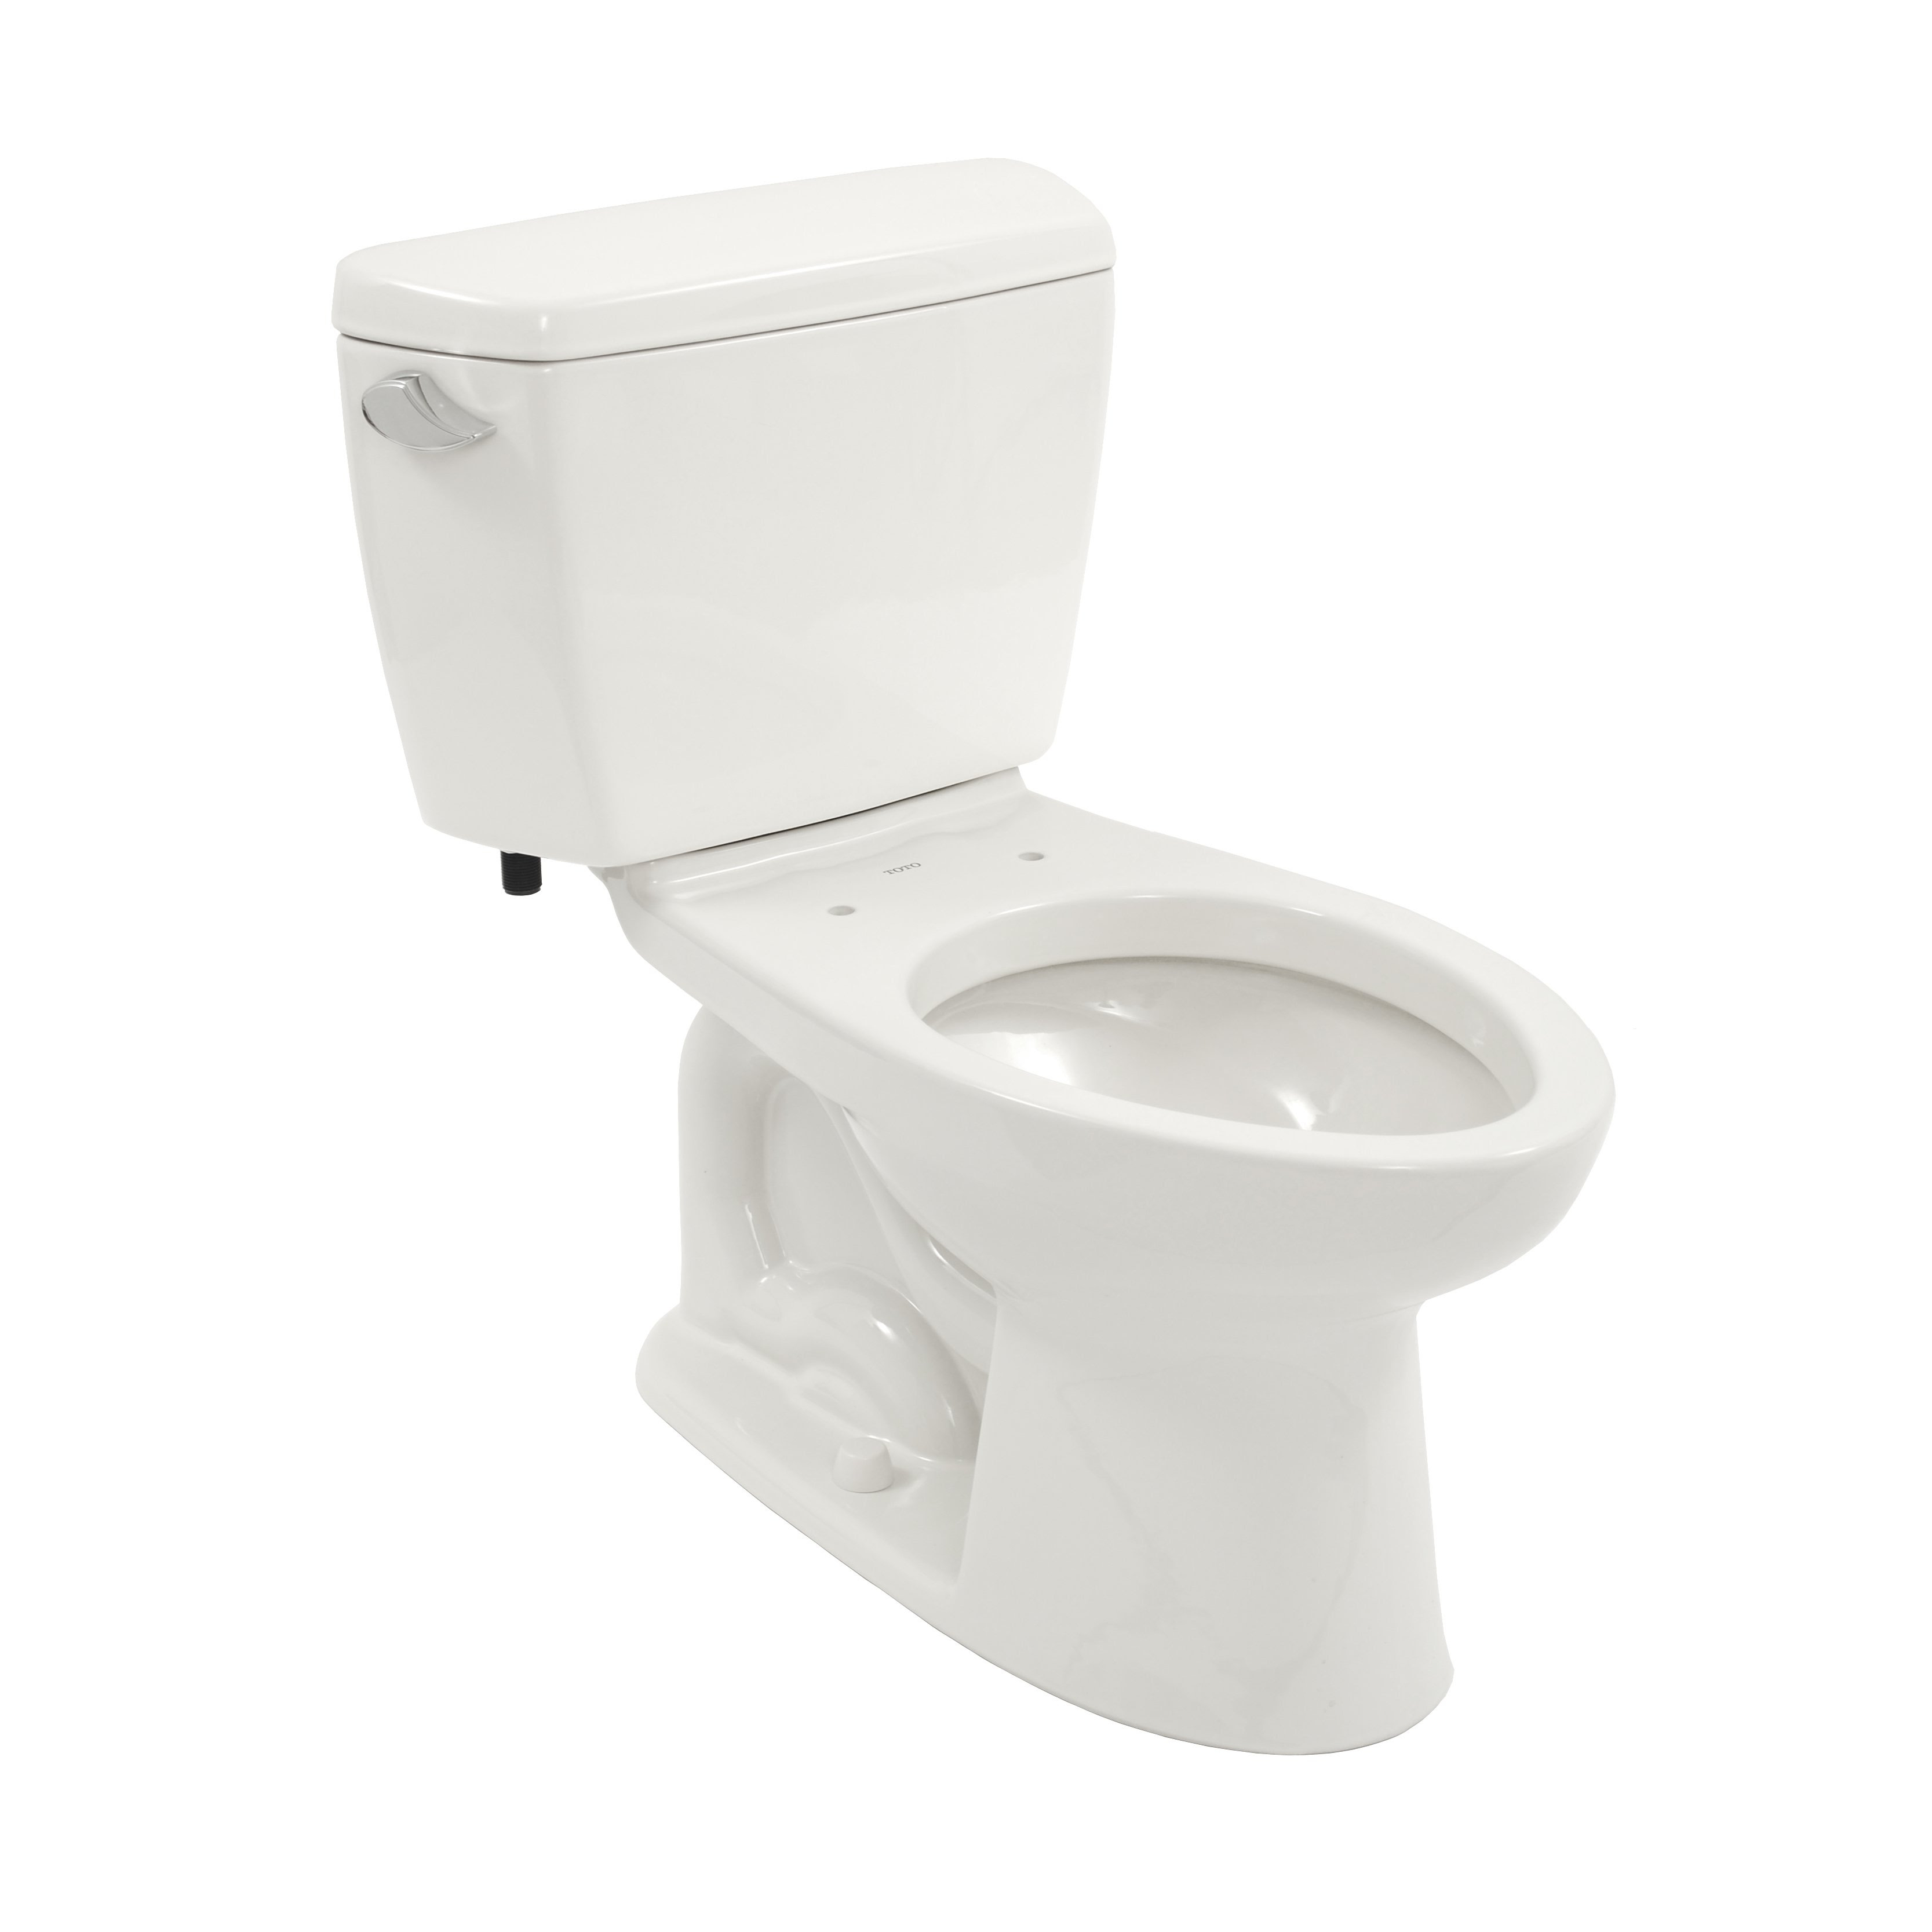 Bath & Shower Bidet Toilets Toto Toilet